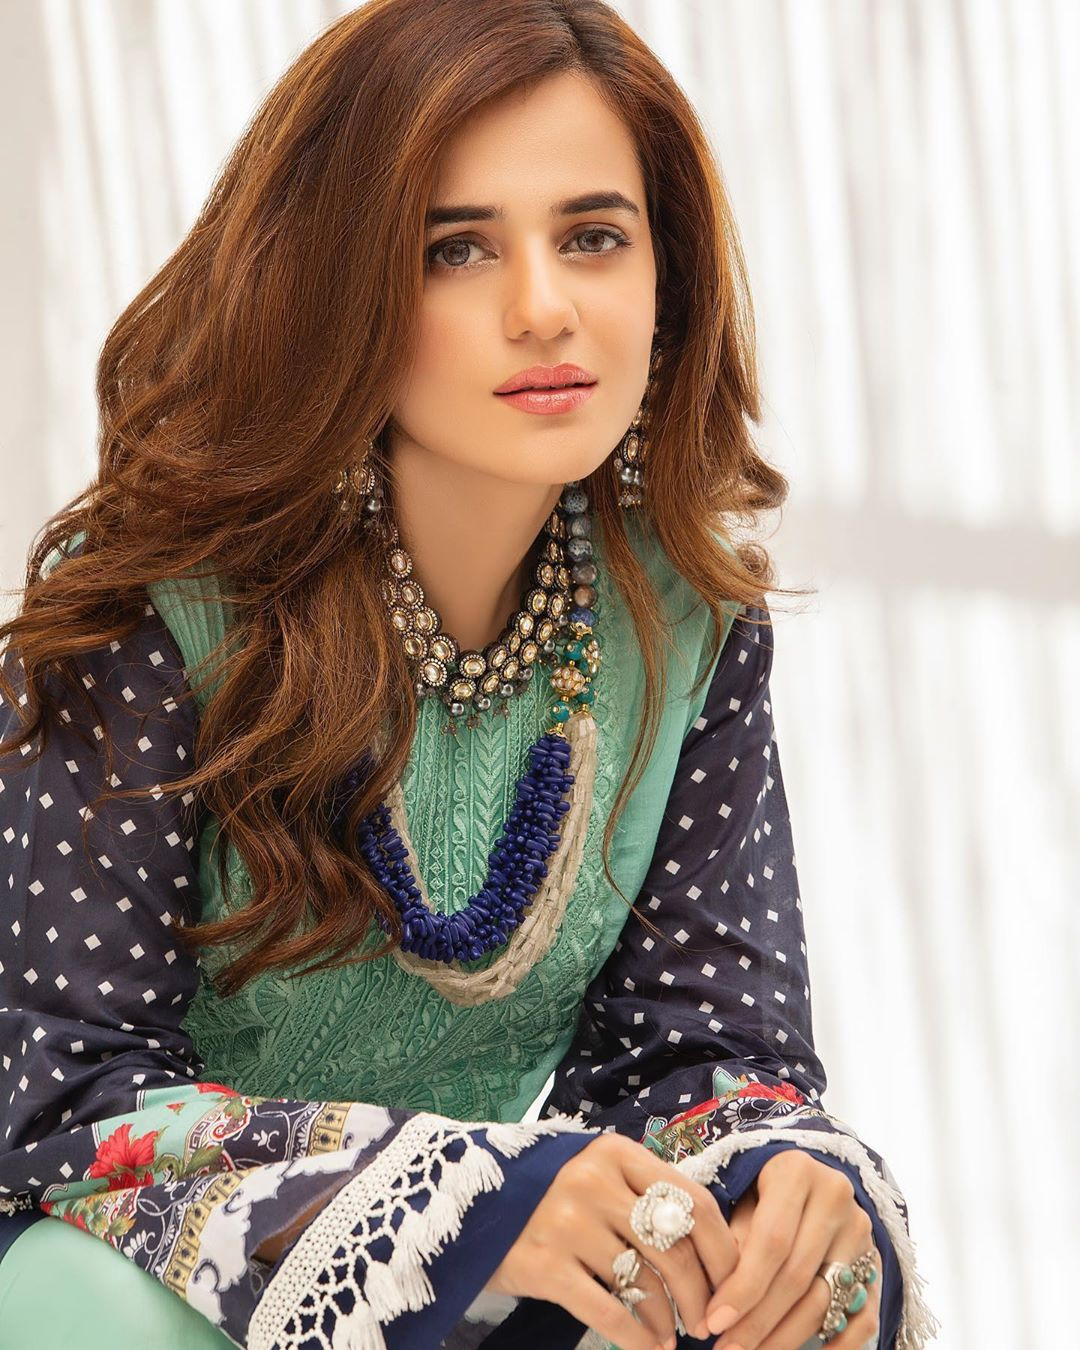 Actress Sumbul Iqbal Loking Gorgeous in Her New Pictures